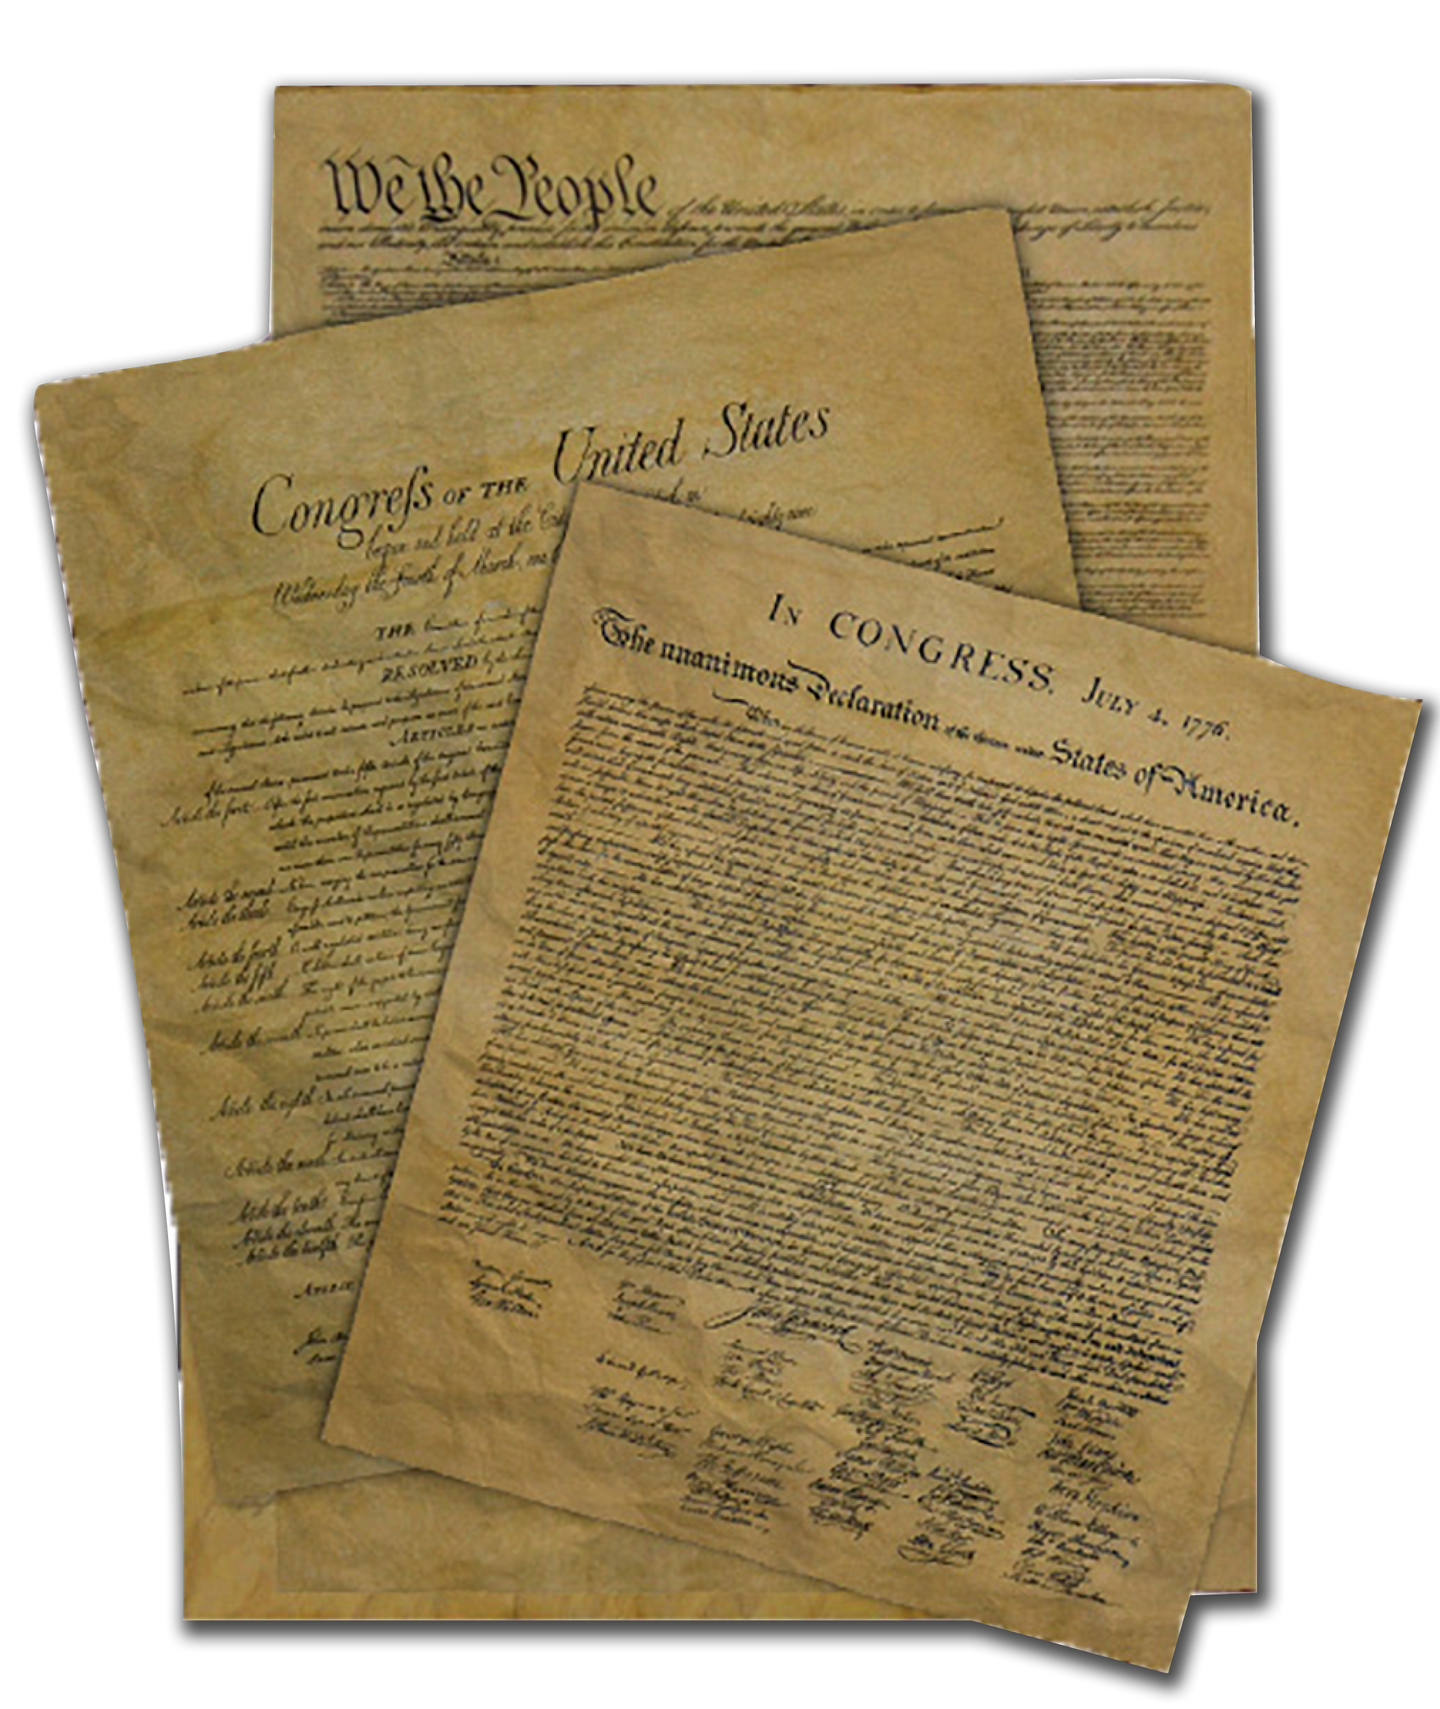 Declaration of Independence, Bill of Rights, United States Constitution